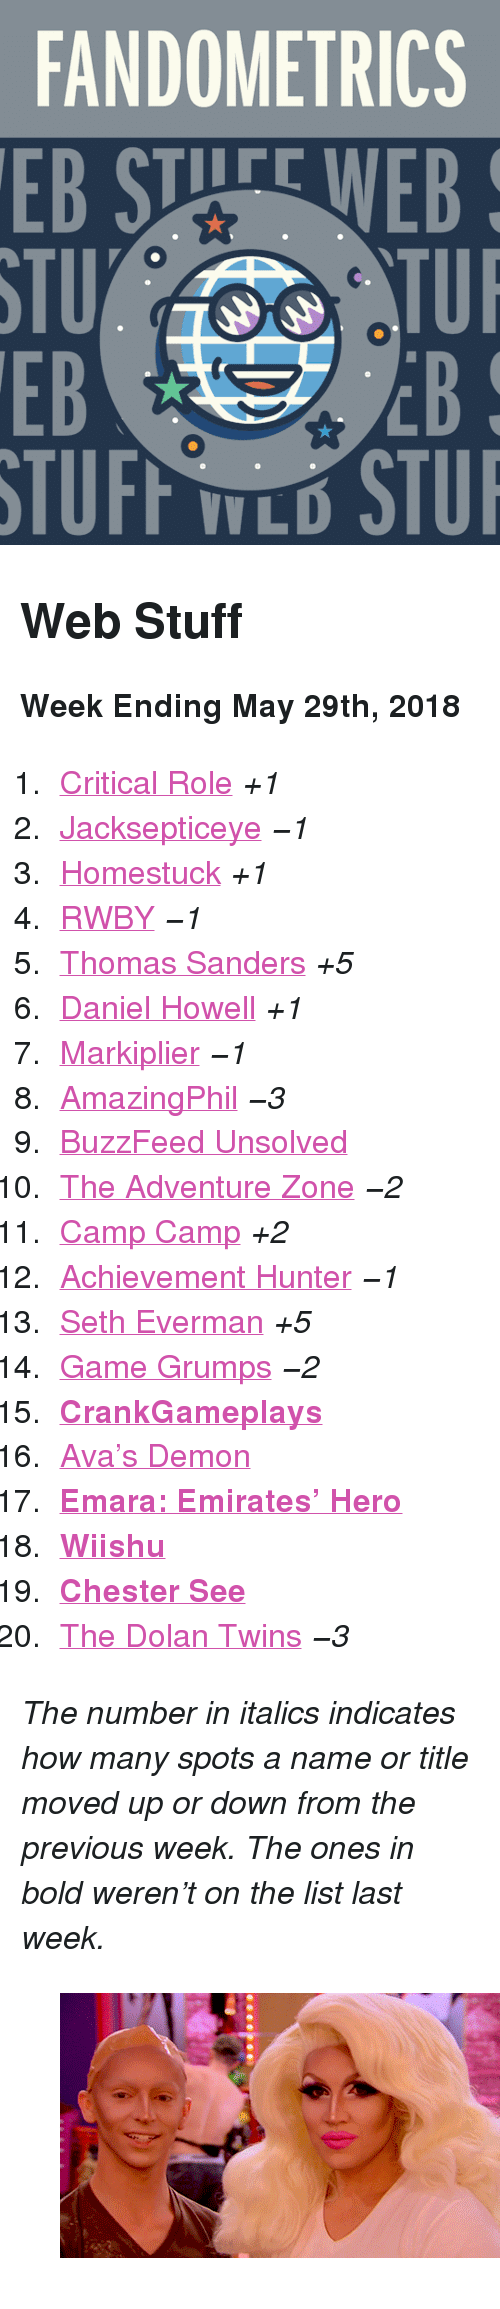 """markiplier: FANDOMETRICS  STU  EB  TUFF TLO STU <h2>Web Stuff</h2><p><b>Week Ending May 29th, 2018</b></p><ol><li><a href=""""http://www.tumblr.com/search/critical%20role"""">Critical Role</a><i>+1</i></li>  <li><a href=""""http://www.tumblr.com/search/jacksepticeye"""">Jacksepticeye</a><i><i>−1</i></i></li>  <li><a href=""""http://www.tumblr.com/search/homestuck"""">Homestuck</a><i>+1</i></li>  <li><a href=""""http://www.tumblr.com/search/rwby"""">RWBY</a><i><i><i>−1</i></i></i></li>  <li><a href=""""http://www.tumblr.com/search/thomas%20sanders"""">Thomas Sanders</a><i>+5</i></li>  <li><a href=""""http://www.tumblr.com/search/daniel%20howell"""">Daniel Howell</a><i>+1</i></li>  <li><a href=""""http://www.tumblr.com/search/markiplier"""">Markiplier</a><i><i>−1</i></i></li>  <li><a href=""""http://www.tumblr.com/search/amazingphil"""">AmazingPhil</a><i><i>−3</i></i></li>  <li><a href=""""http://www.tumblr.com/search/buzzfeed%20unsolved"""">BuzzFeed Unsolved</a></li>  <li><a href=""""http://www.tumblr.com/search/the%20adventure%20zone"""">The Adventure Zone</a><i><i>−2</i></i></li>  <li><a href=""""http://www.tumblr.com/search/camp%20camp"""">Camp Camp</a><i>+2</i></li>  <li><a href=""""http://www.tumblr.com/search/achievement%20hunter"""">Achievement Hunter</a><i><i>−1</i></i></li>  <li><a href=""""http://www.tumblr.com/search/seth%20everman"""">Seth Everman</a><i>+5</i></li>  <li><a href=""""http://www.tumblr.com/search/game%20grumps"""">Game Grumps</a><i><i>−2</i></i></li>  <li><a href=""""http://www.tumblr.com/search/crankgameplays""""><b>CrankGameplays</b></a></li>  <li><a href=""""http://www.tumblr.com/search/avas%20demon"""">Ava&rsquo;s Demon</a></li>  <li><a href=""""http://www.tumblr.com/search/emara""""><b>Emara: Emirates&rsquo; Hero</b></a></li>  <li><a href=""""http://www.tumblr.com/search/wiishu""""><b>Wiishu</b></a></li>  <li><a href=""""http://www.tumblr.com/search/chester%20see""""><b>Chester See</b></a></li>  <li><a href=""""http://www.tumblr.com/search/dolan%20twins"""">The Dolan Twins</a><i><i>−3</i></i></li></ol><p><i>The number in italics indicates how many spots """